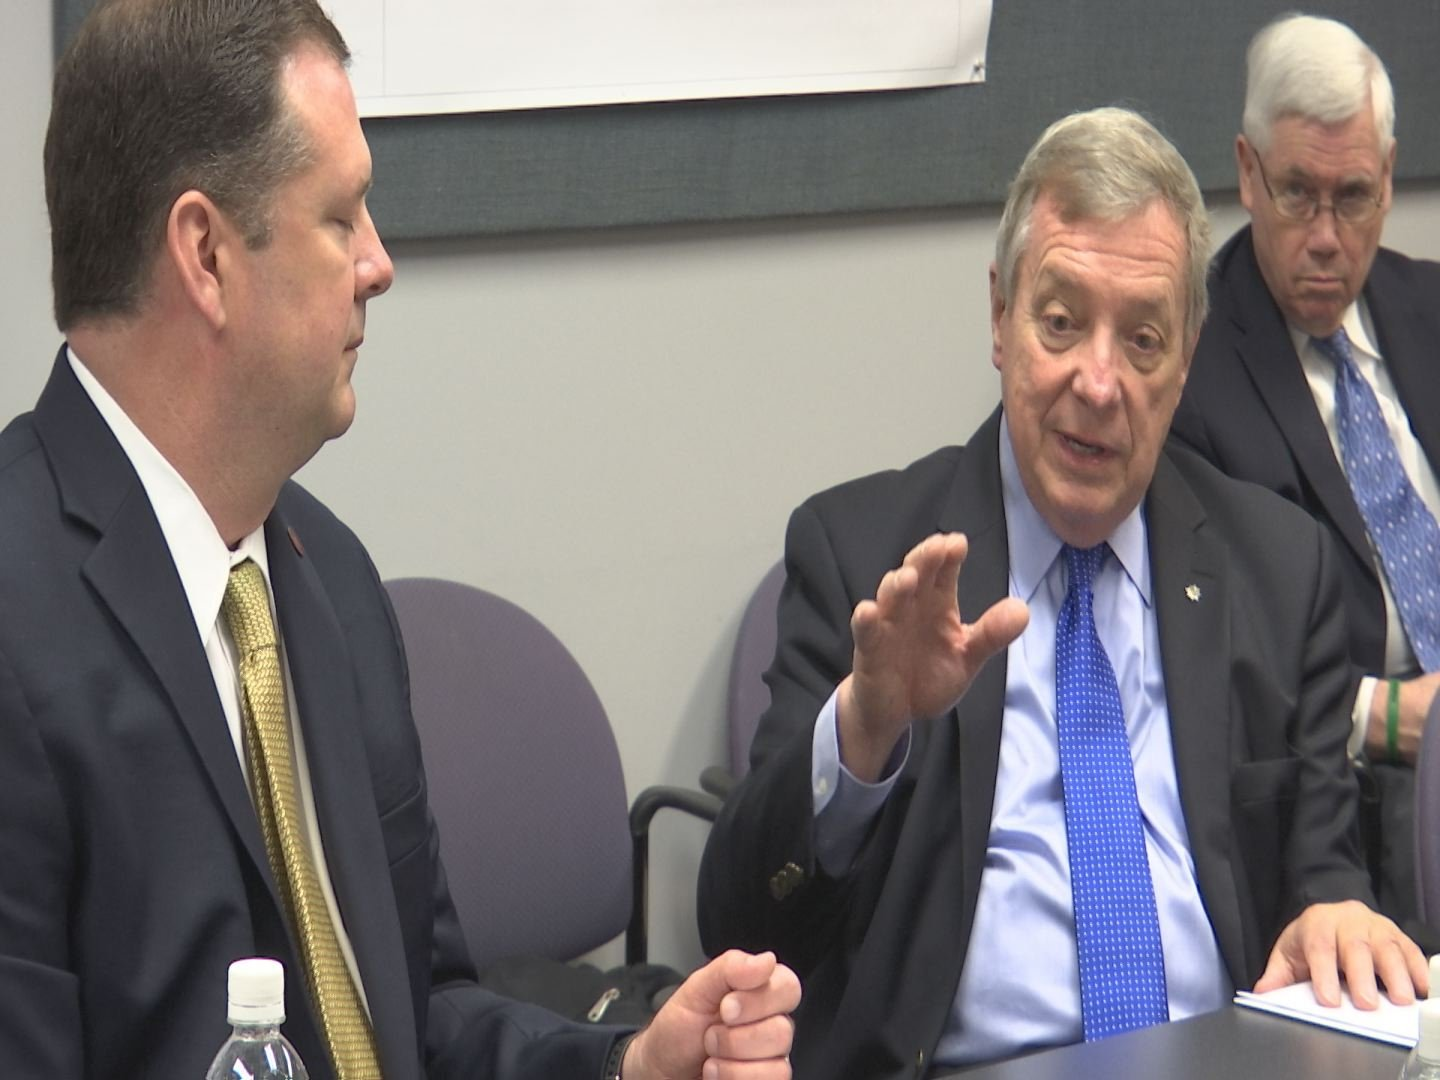 U.S. Sen. Dick Durbin of Illinois met with transportation leaders on potential EAS cuts on Friday, April 21, 2017.